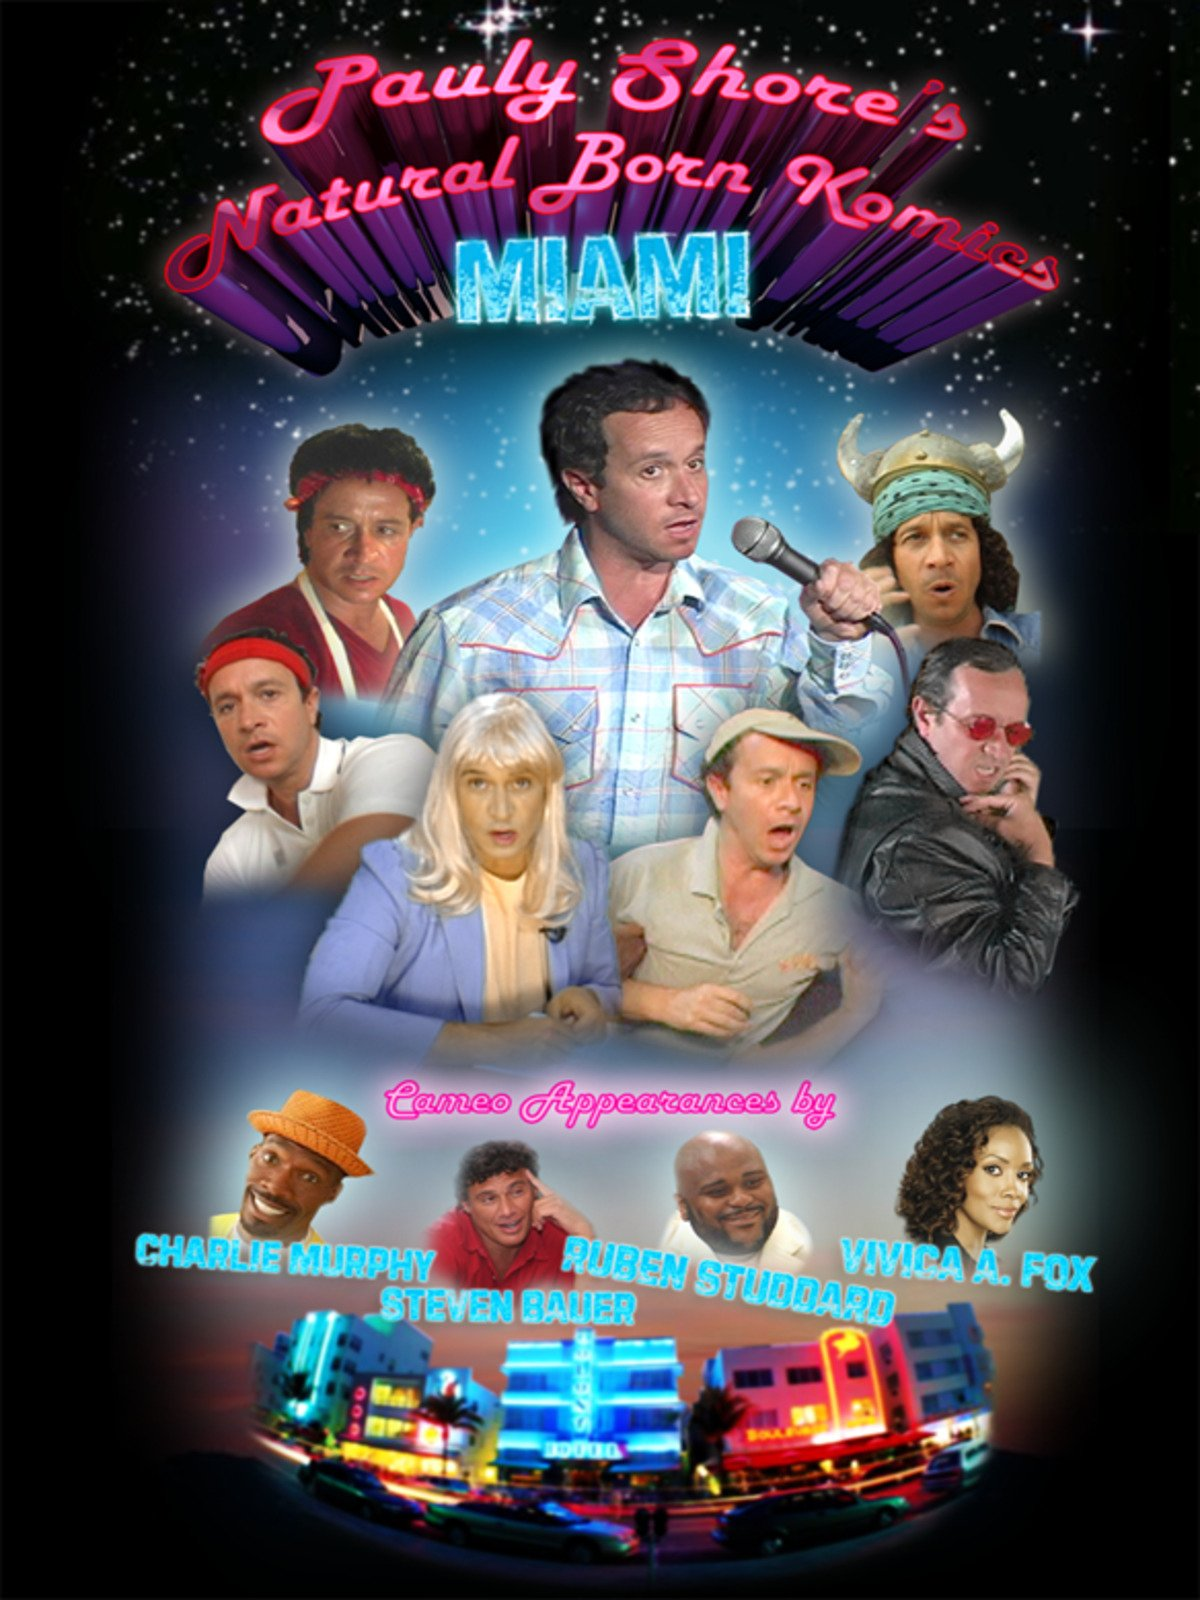 Pauly Shore's Natural Born Komics: Miami